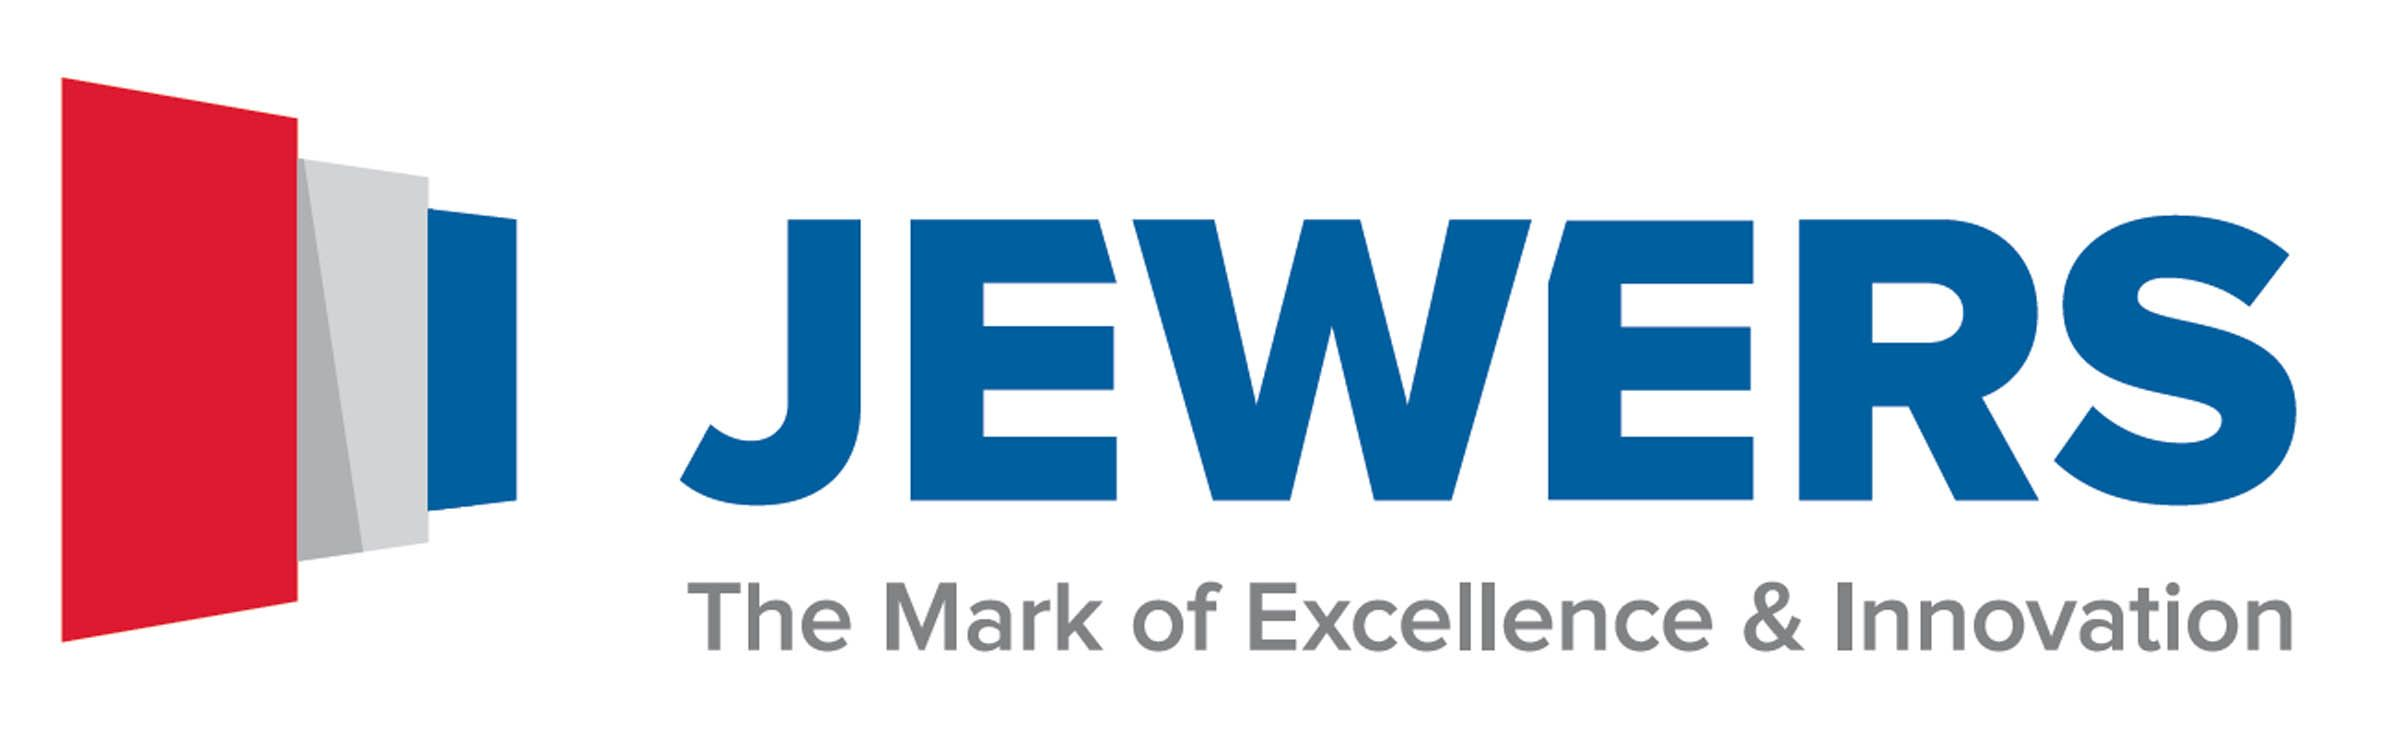 Jewers Doors Logo